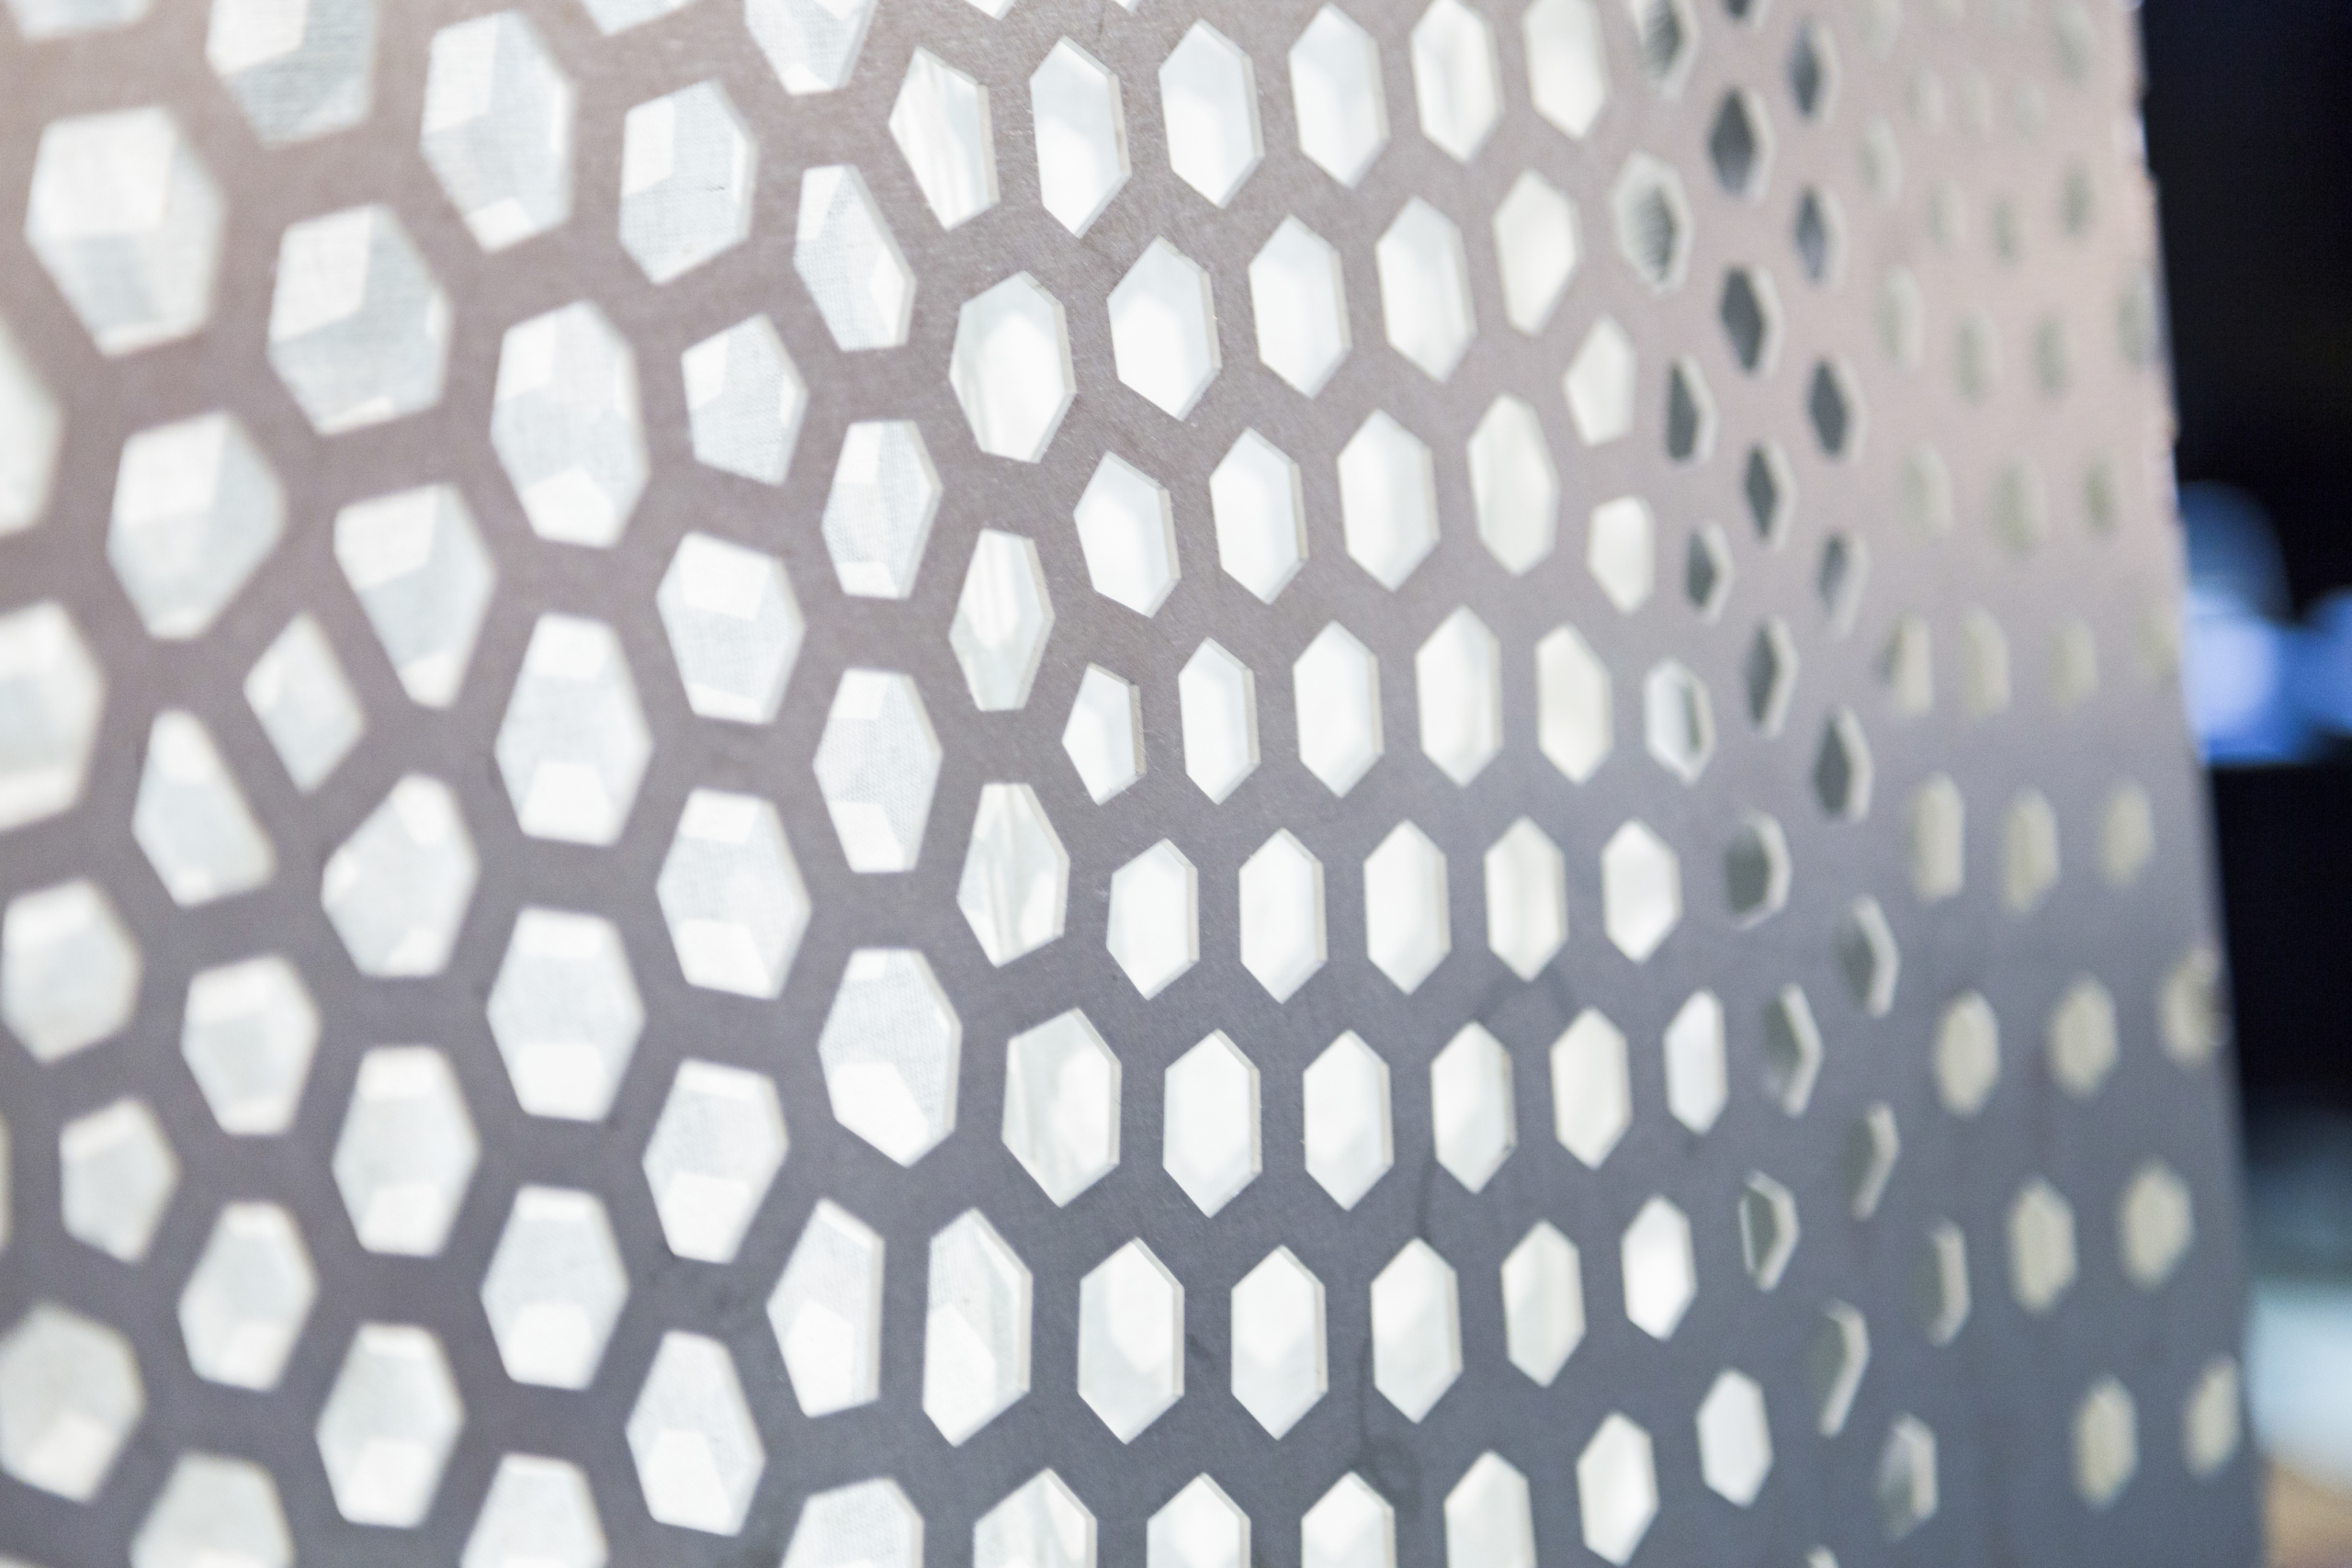 Working with engineers, the perforated metal can be endlessly customized.